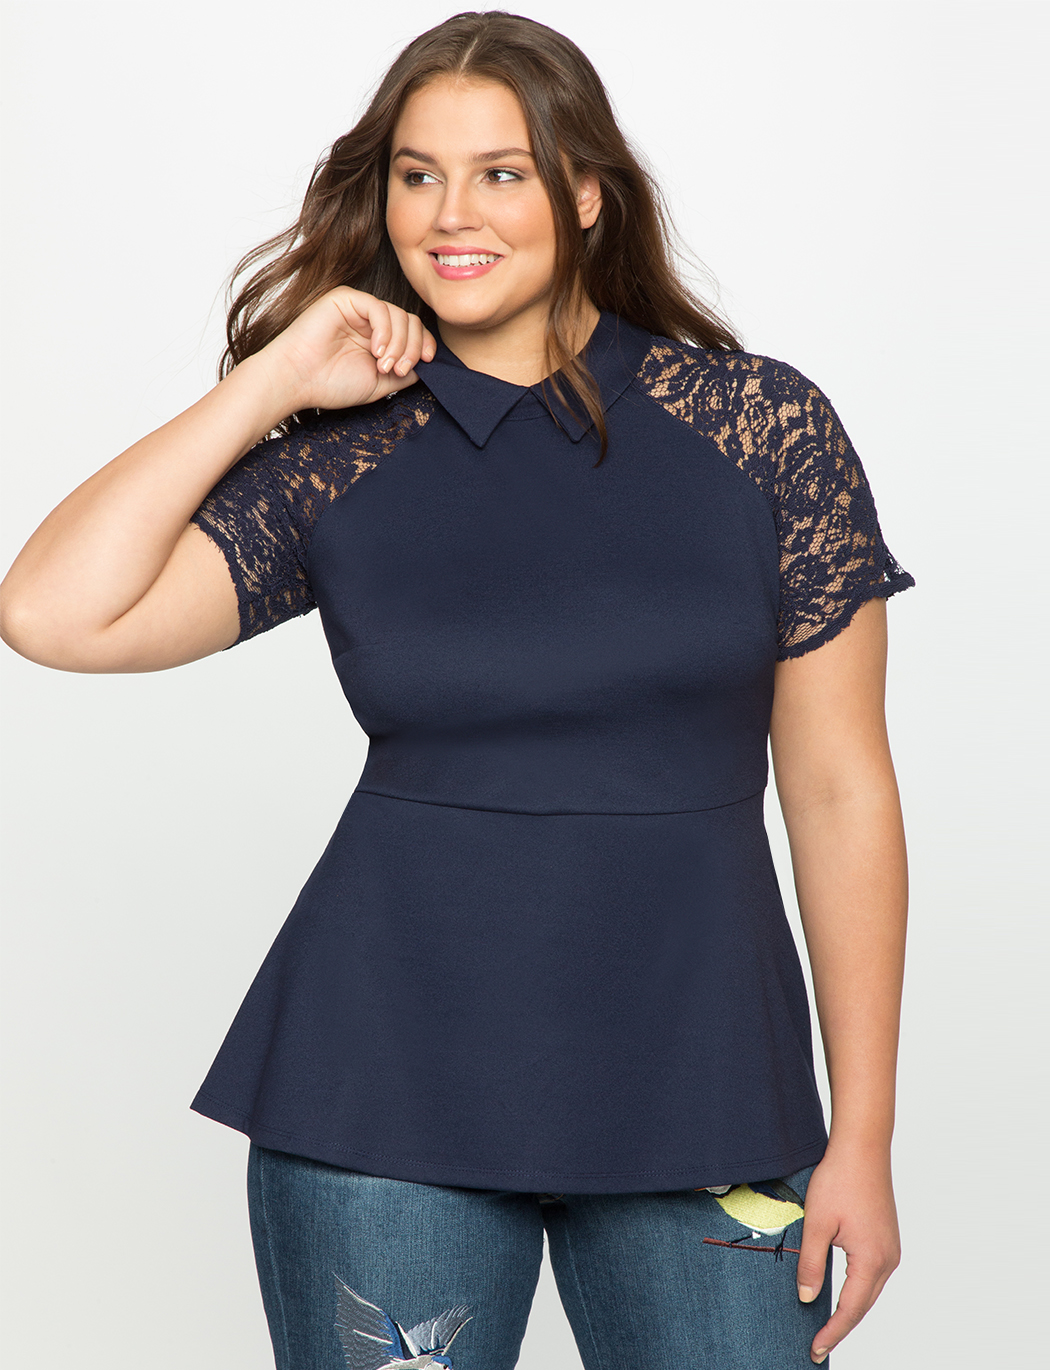 Create a flirty, carefree with the Lulus Lighthearted Love Light Blue Lace Peplum Top! Woven cotton is perfectly breezy as it shapes this surplice top with a crochet lace trimmed neckline, V-back, and a sleeveless cut. Elasticized waist flares into a peplum hem. Free shipping and free returns!/5(8).